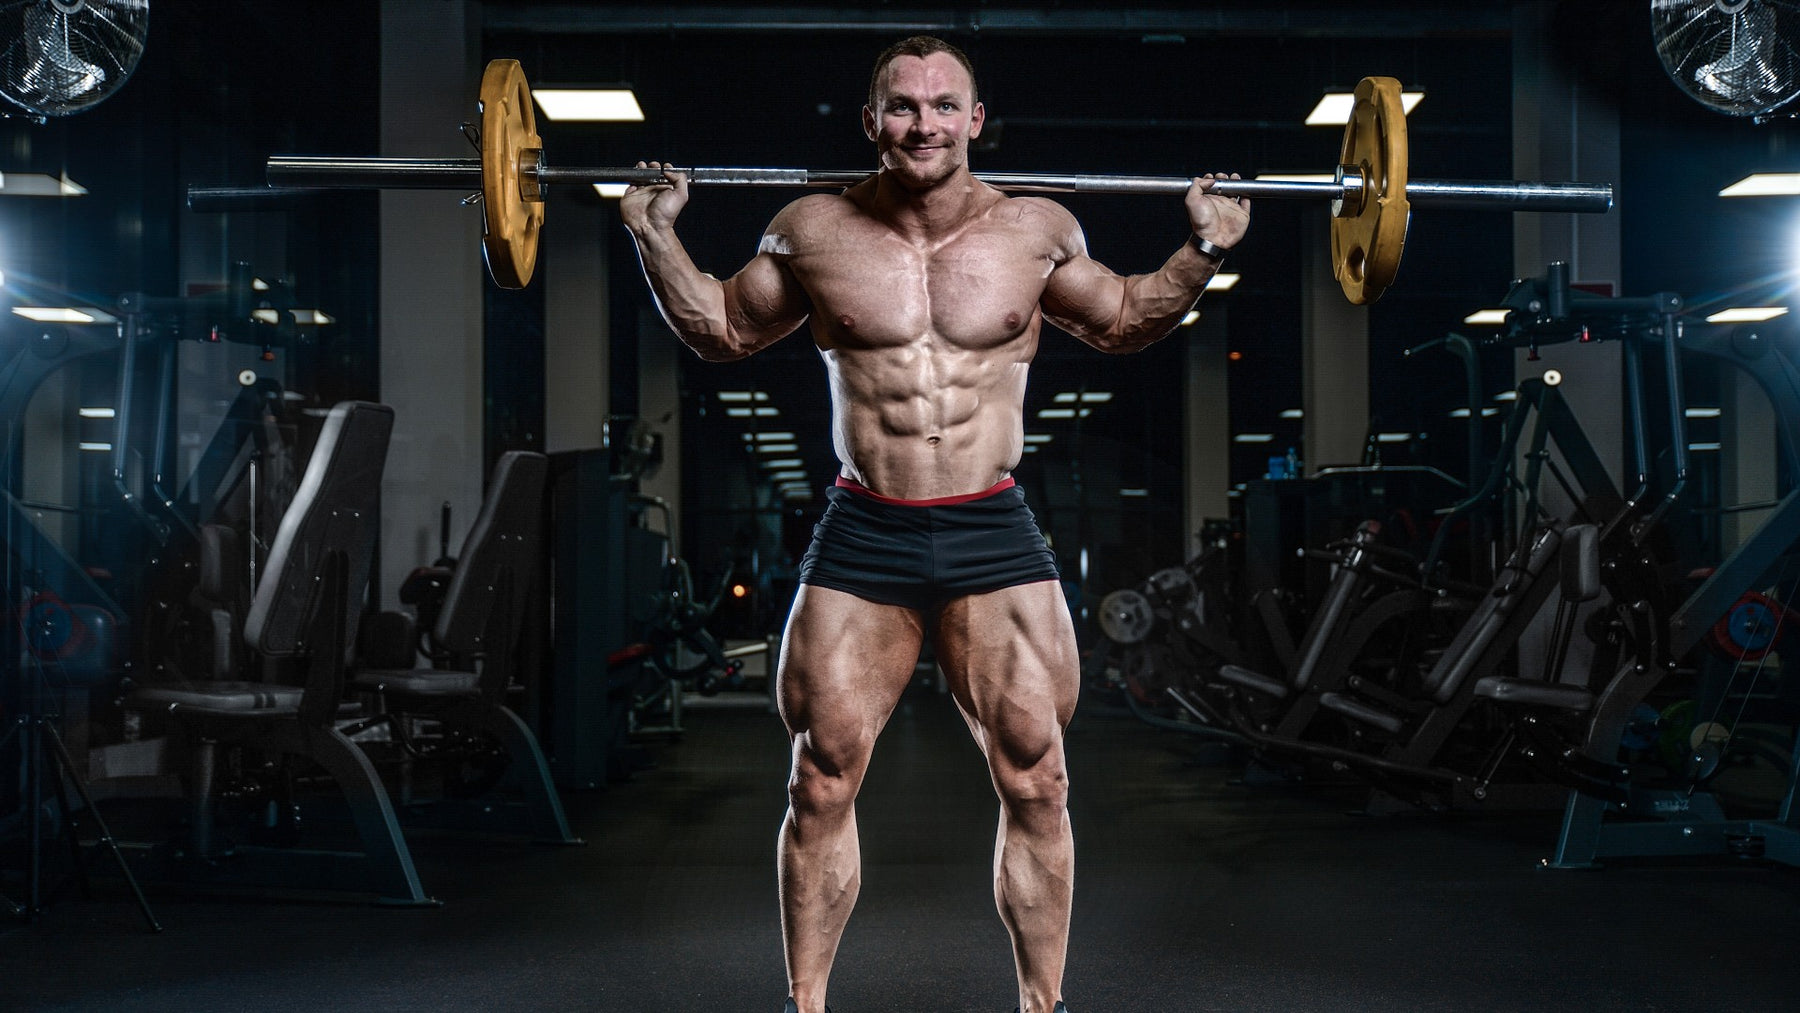 Leg Workout - Building Big Legs One at a Time